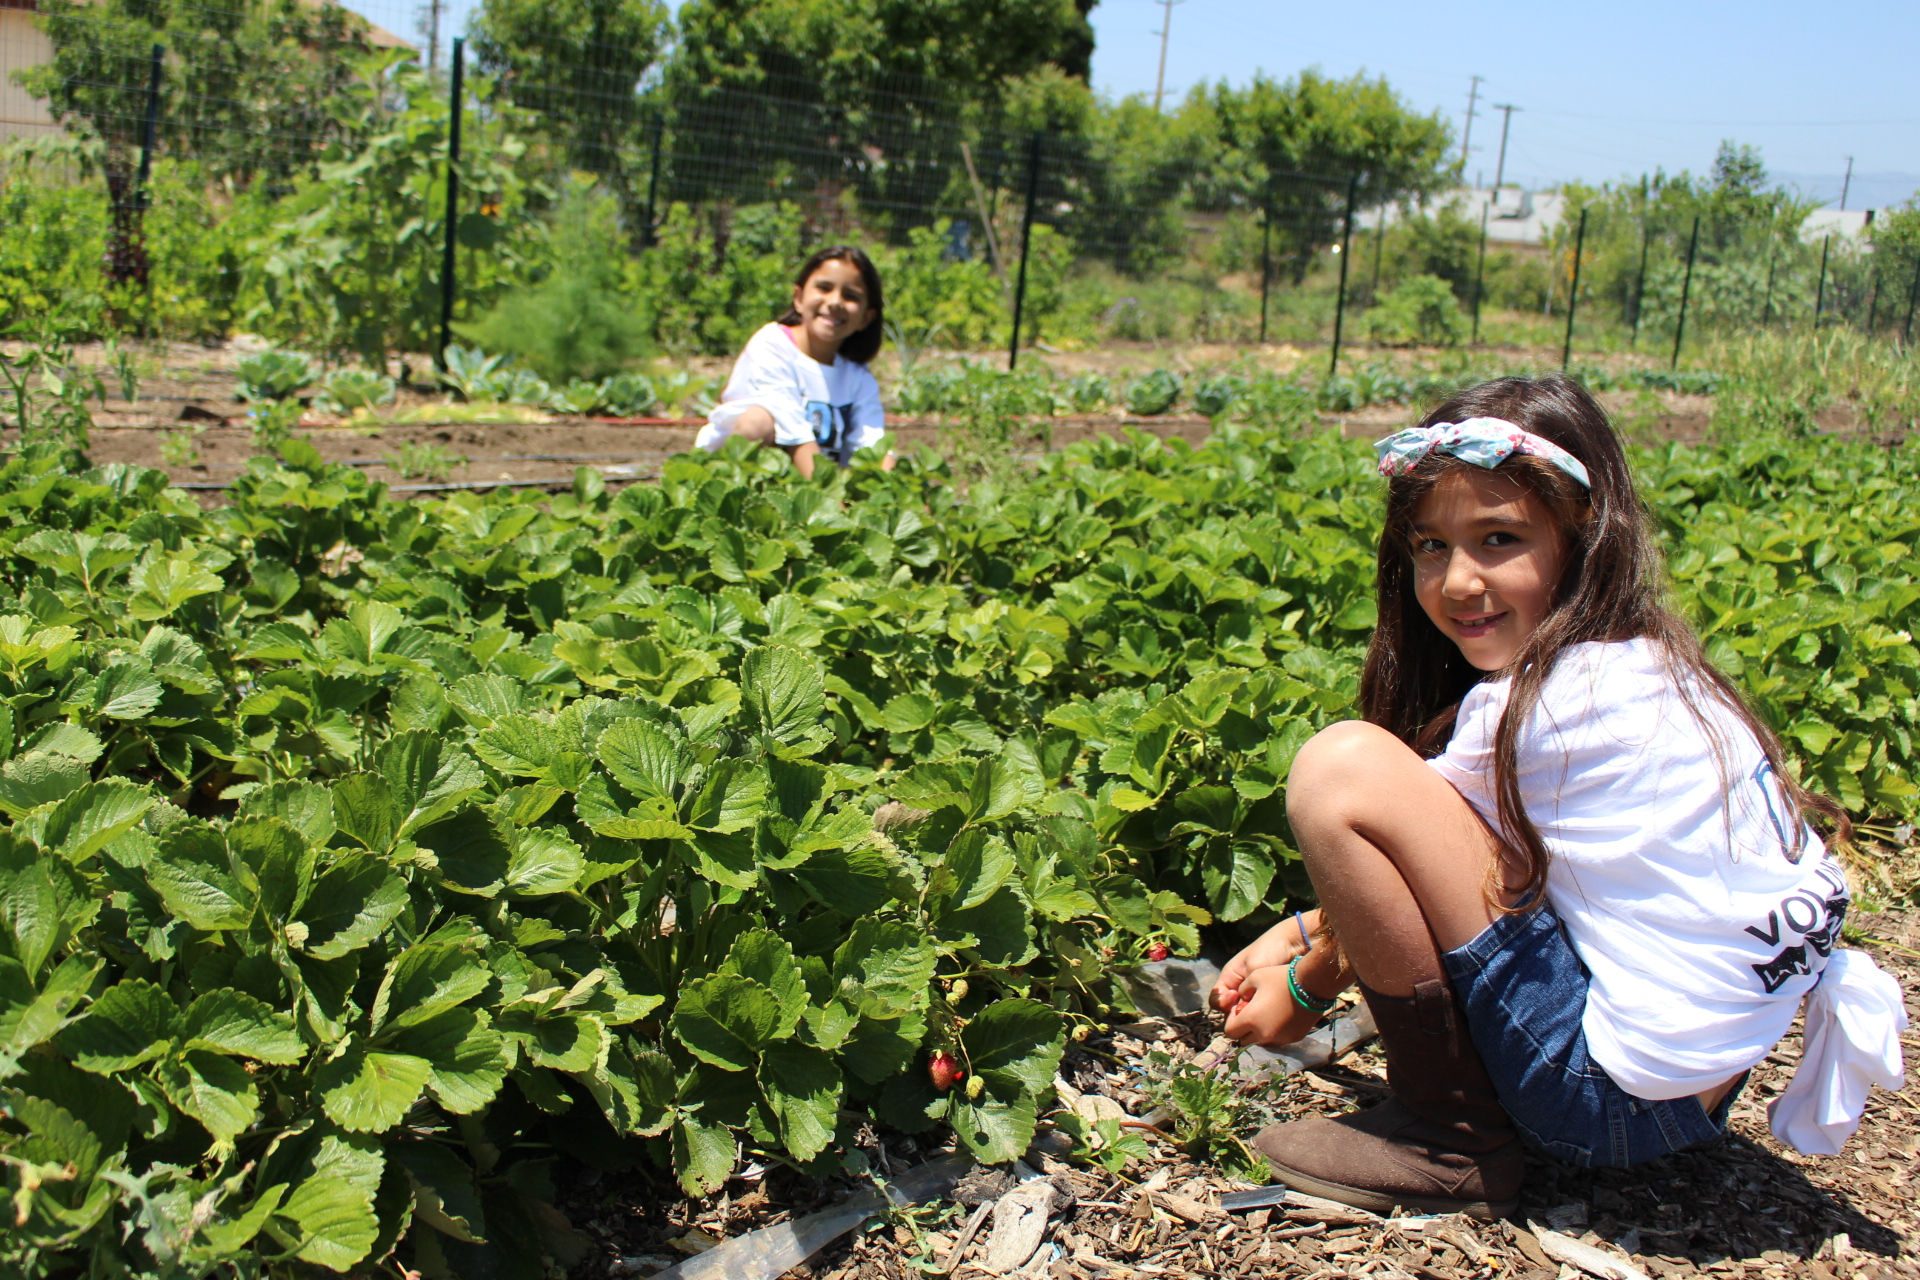 Developing Neighborhood Agriculture Initiative child volunteers gardening for healthier communities